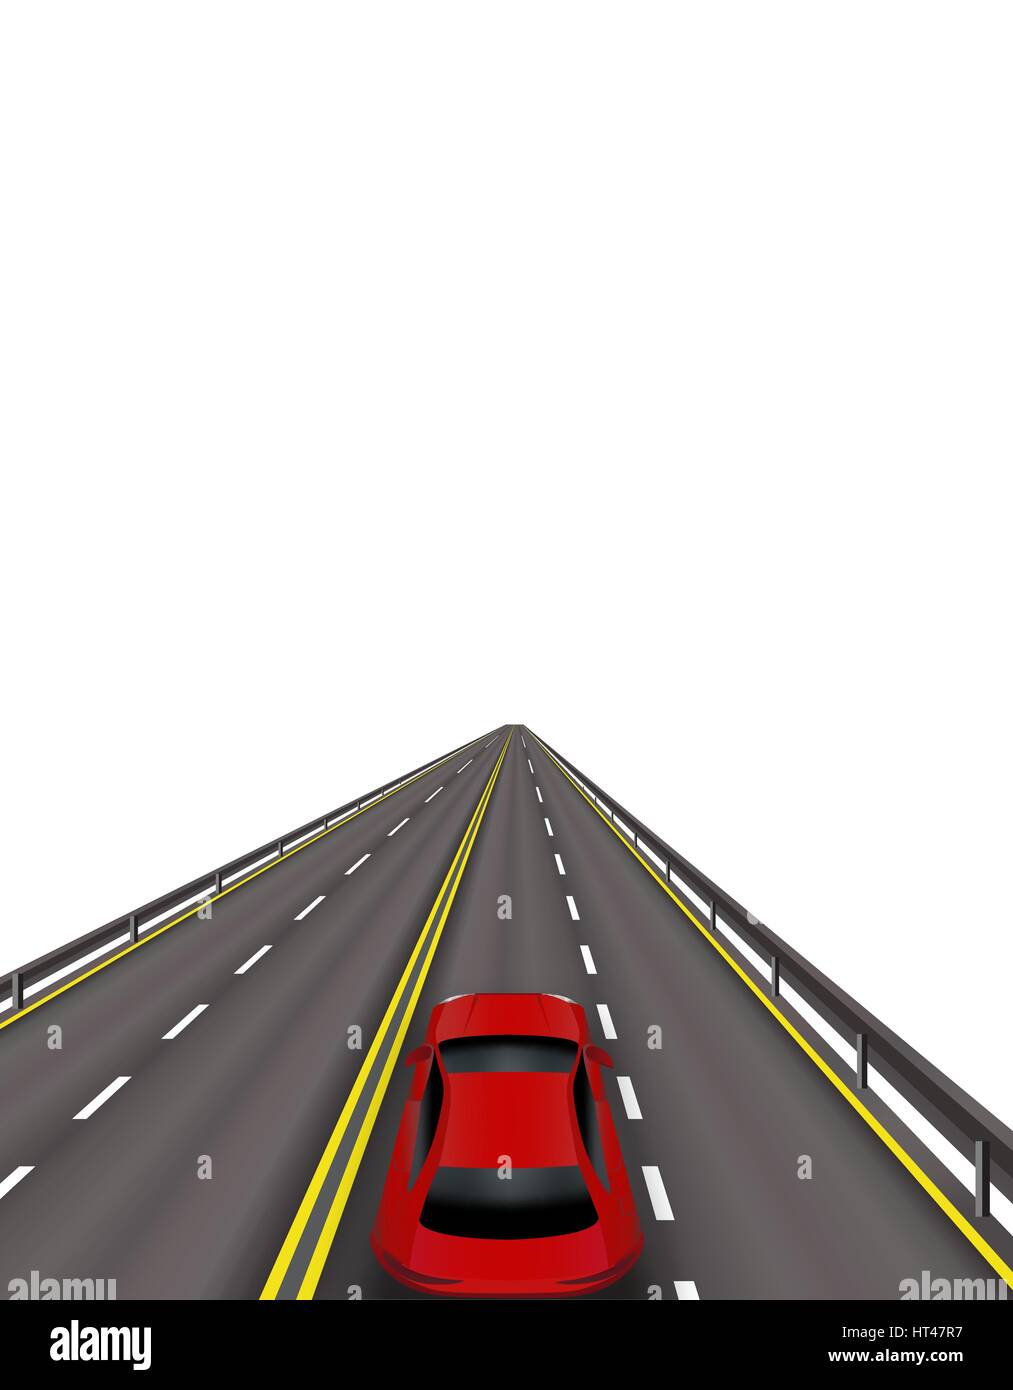 High-speed highway. Red cars on the road . In perspective. Isolated on white background. illustration - Stock Image